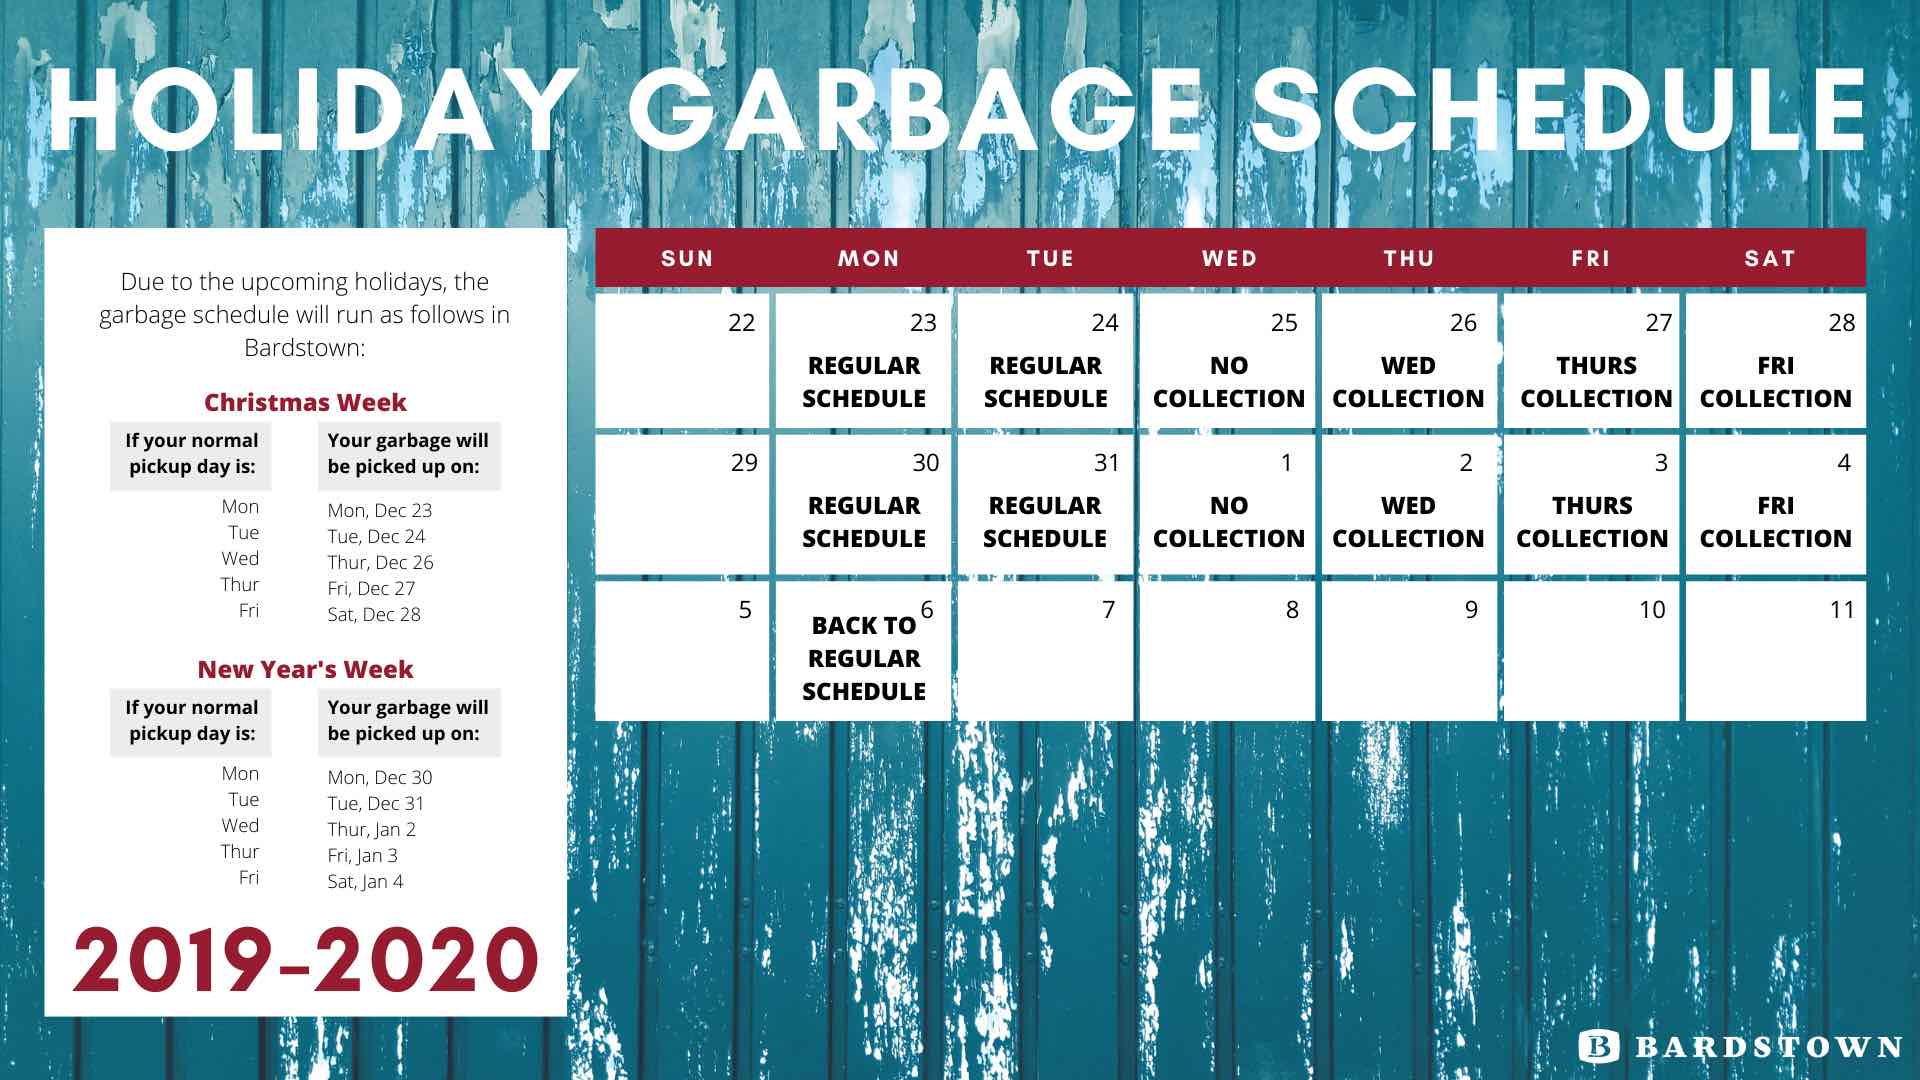 2019-20 Holiday Garbage Schedule